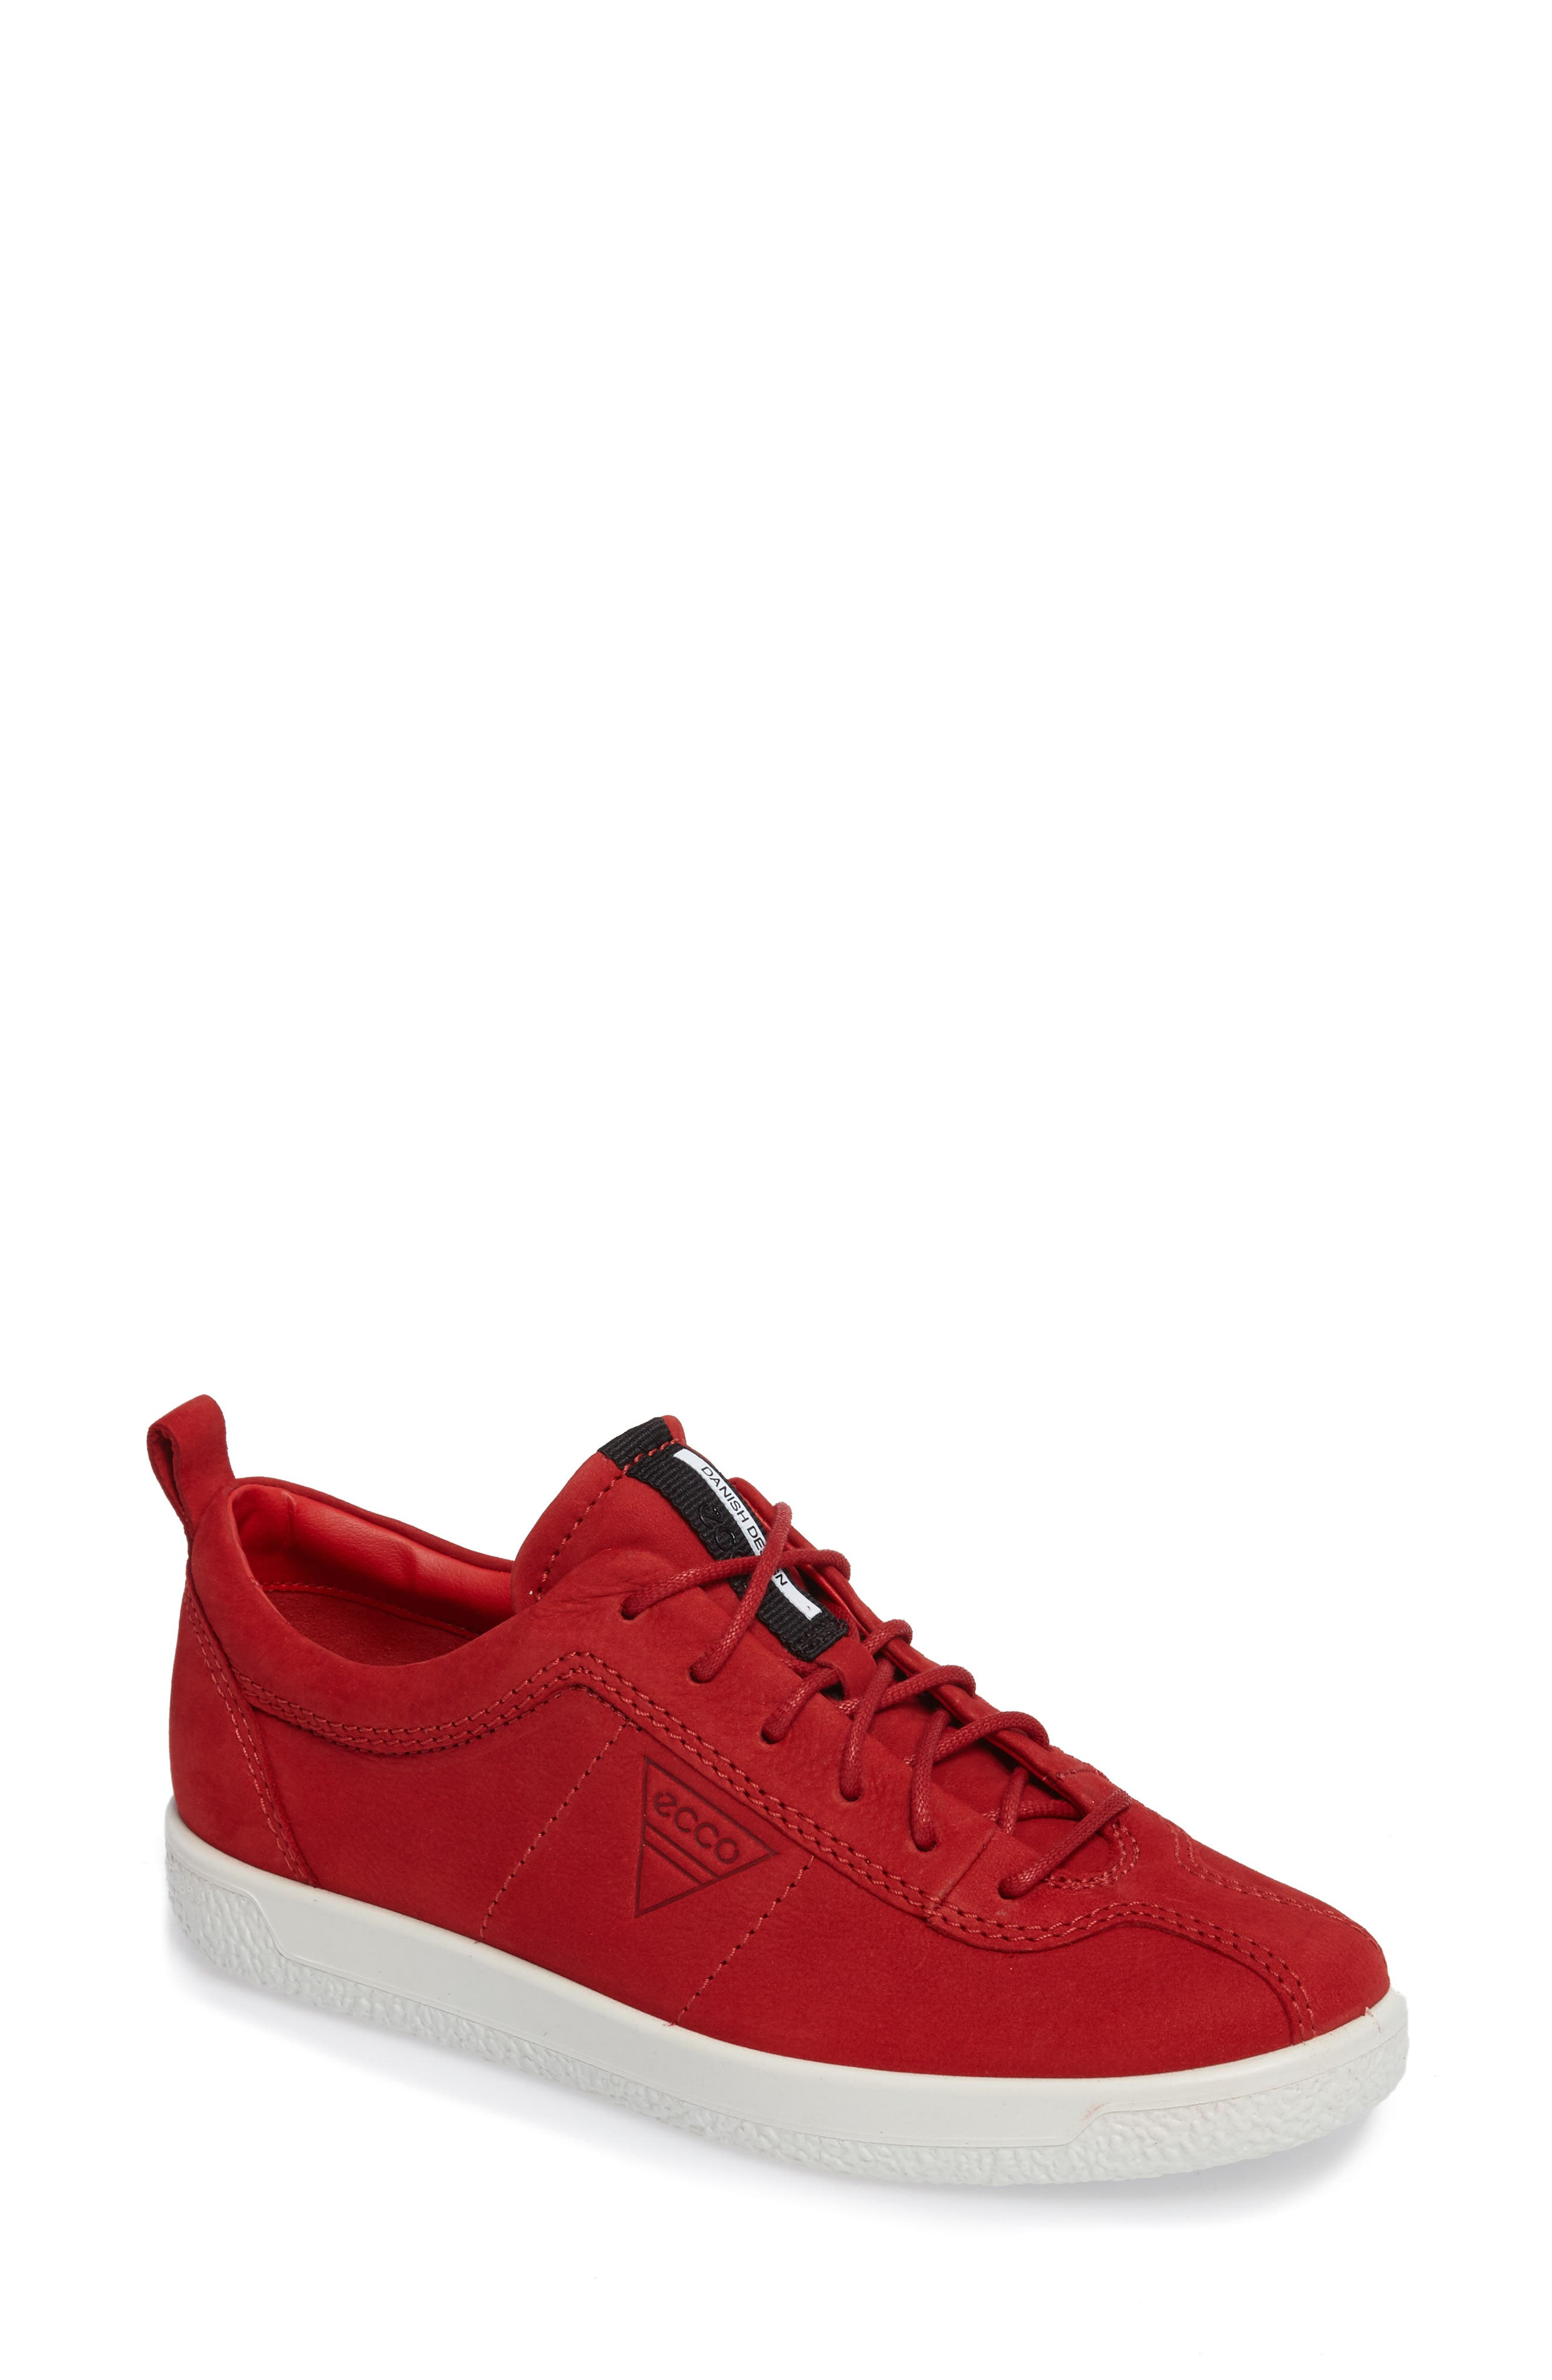 Soft 1 Sneaker,                         Main,                         color, Chili Red Leather